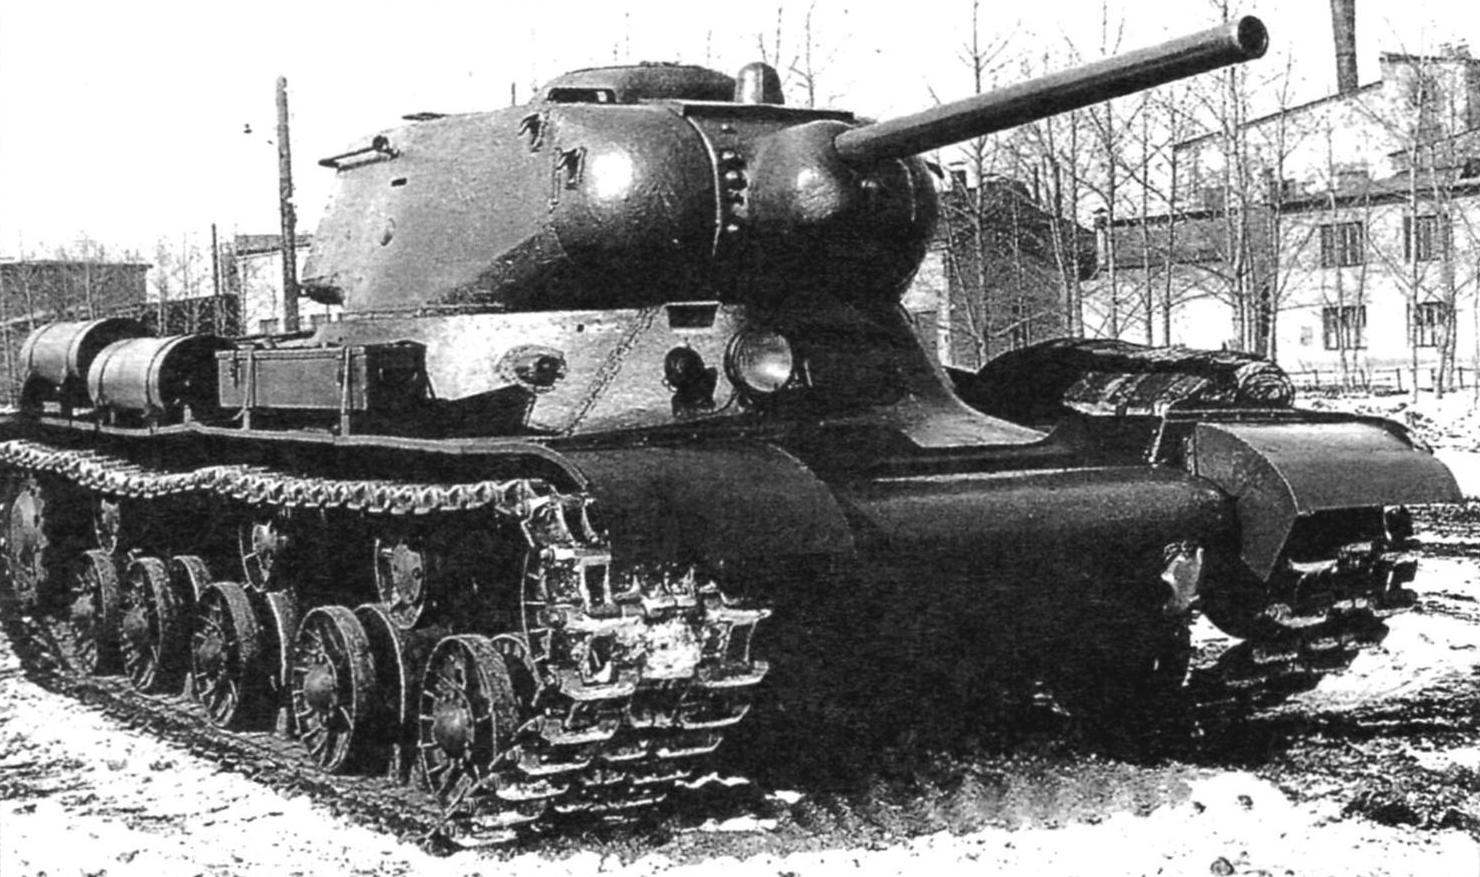 Medium tank KV-13, armed with 76.2-mm gun ZIS-5